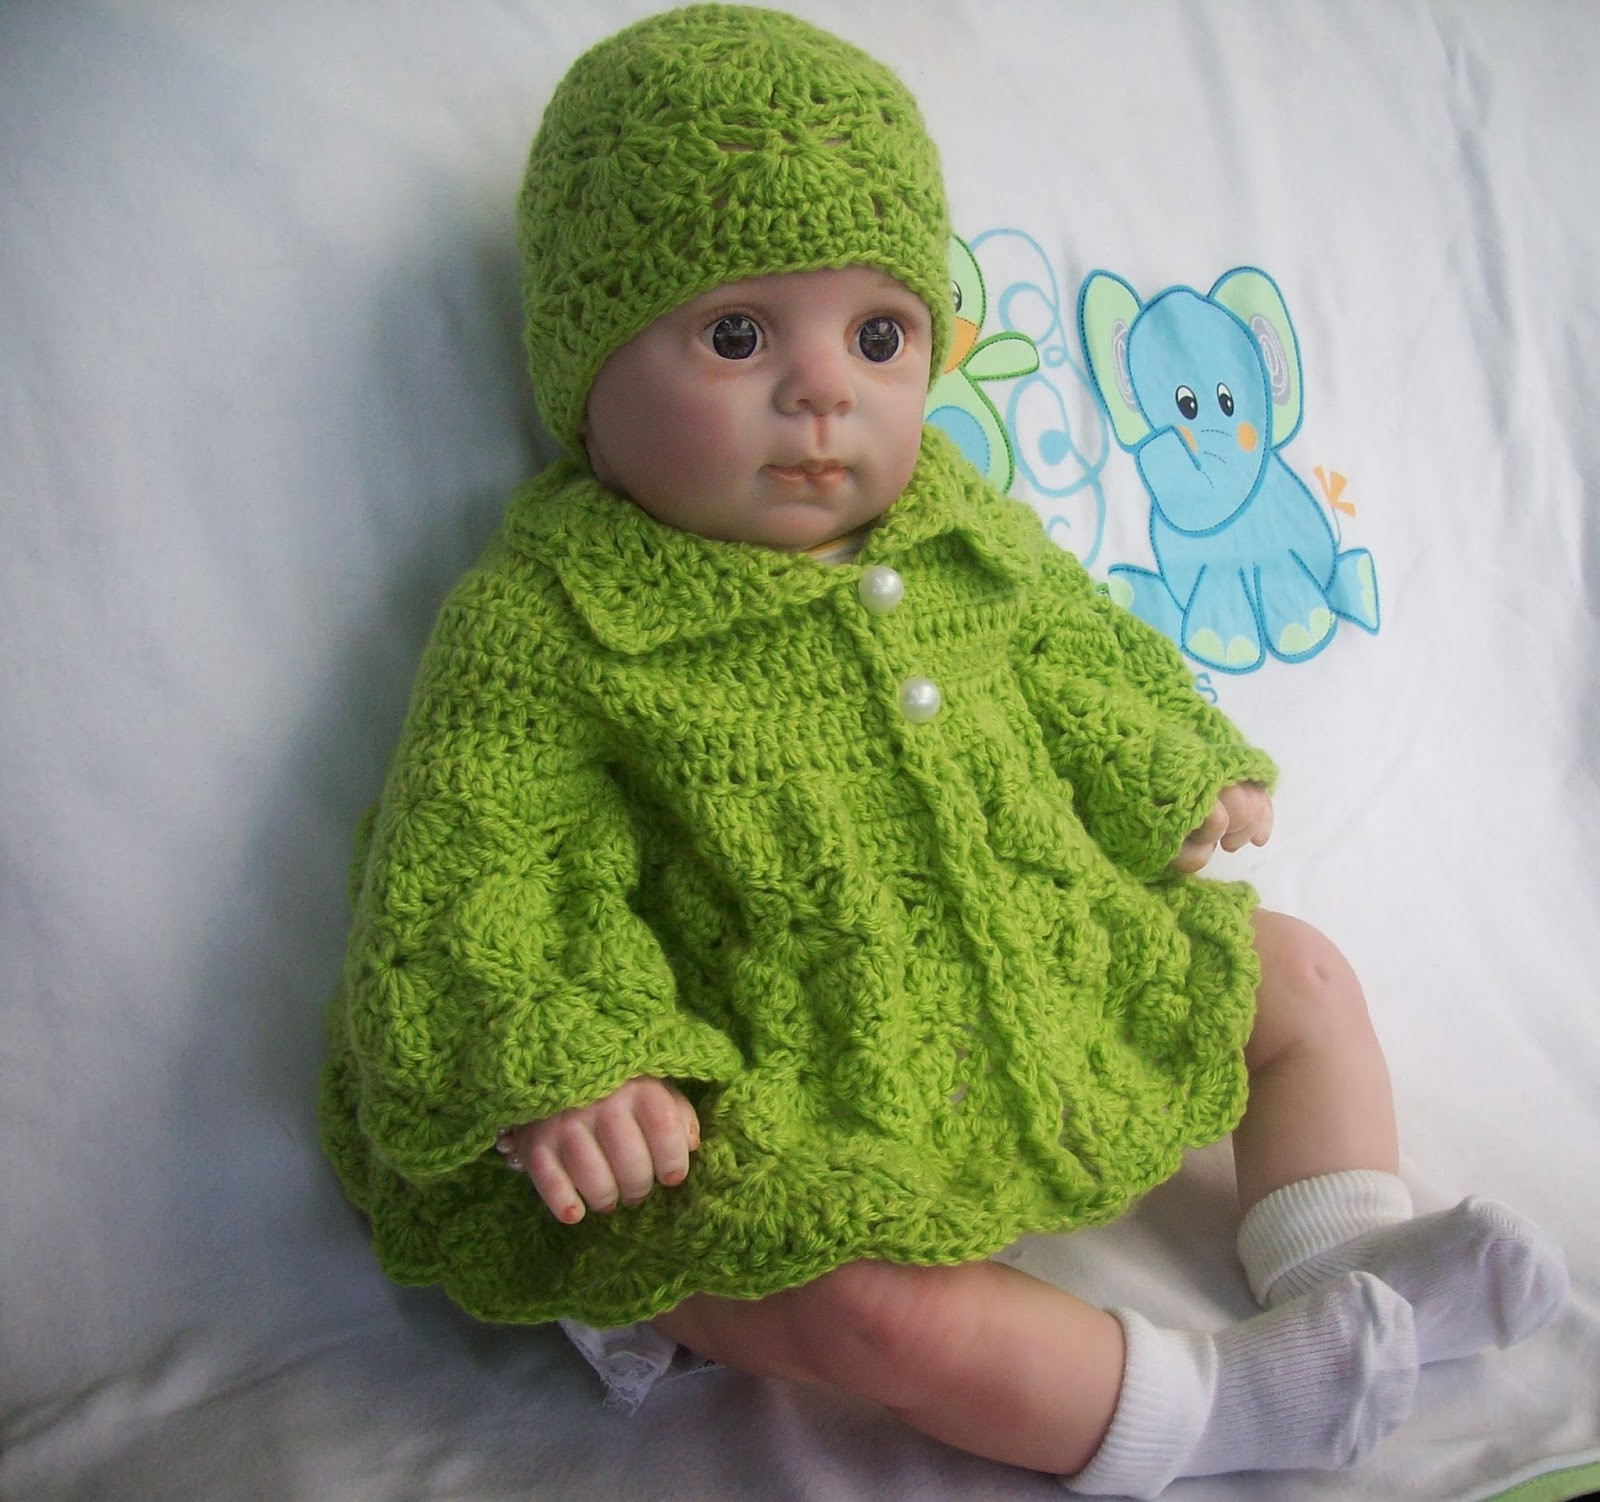 Crochet toddler Sweaters Awesome Free Crochet Patterns by Cats Rockin Crochet Of Attractive 46 Pictures Crochet toddler Sweaters